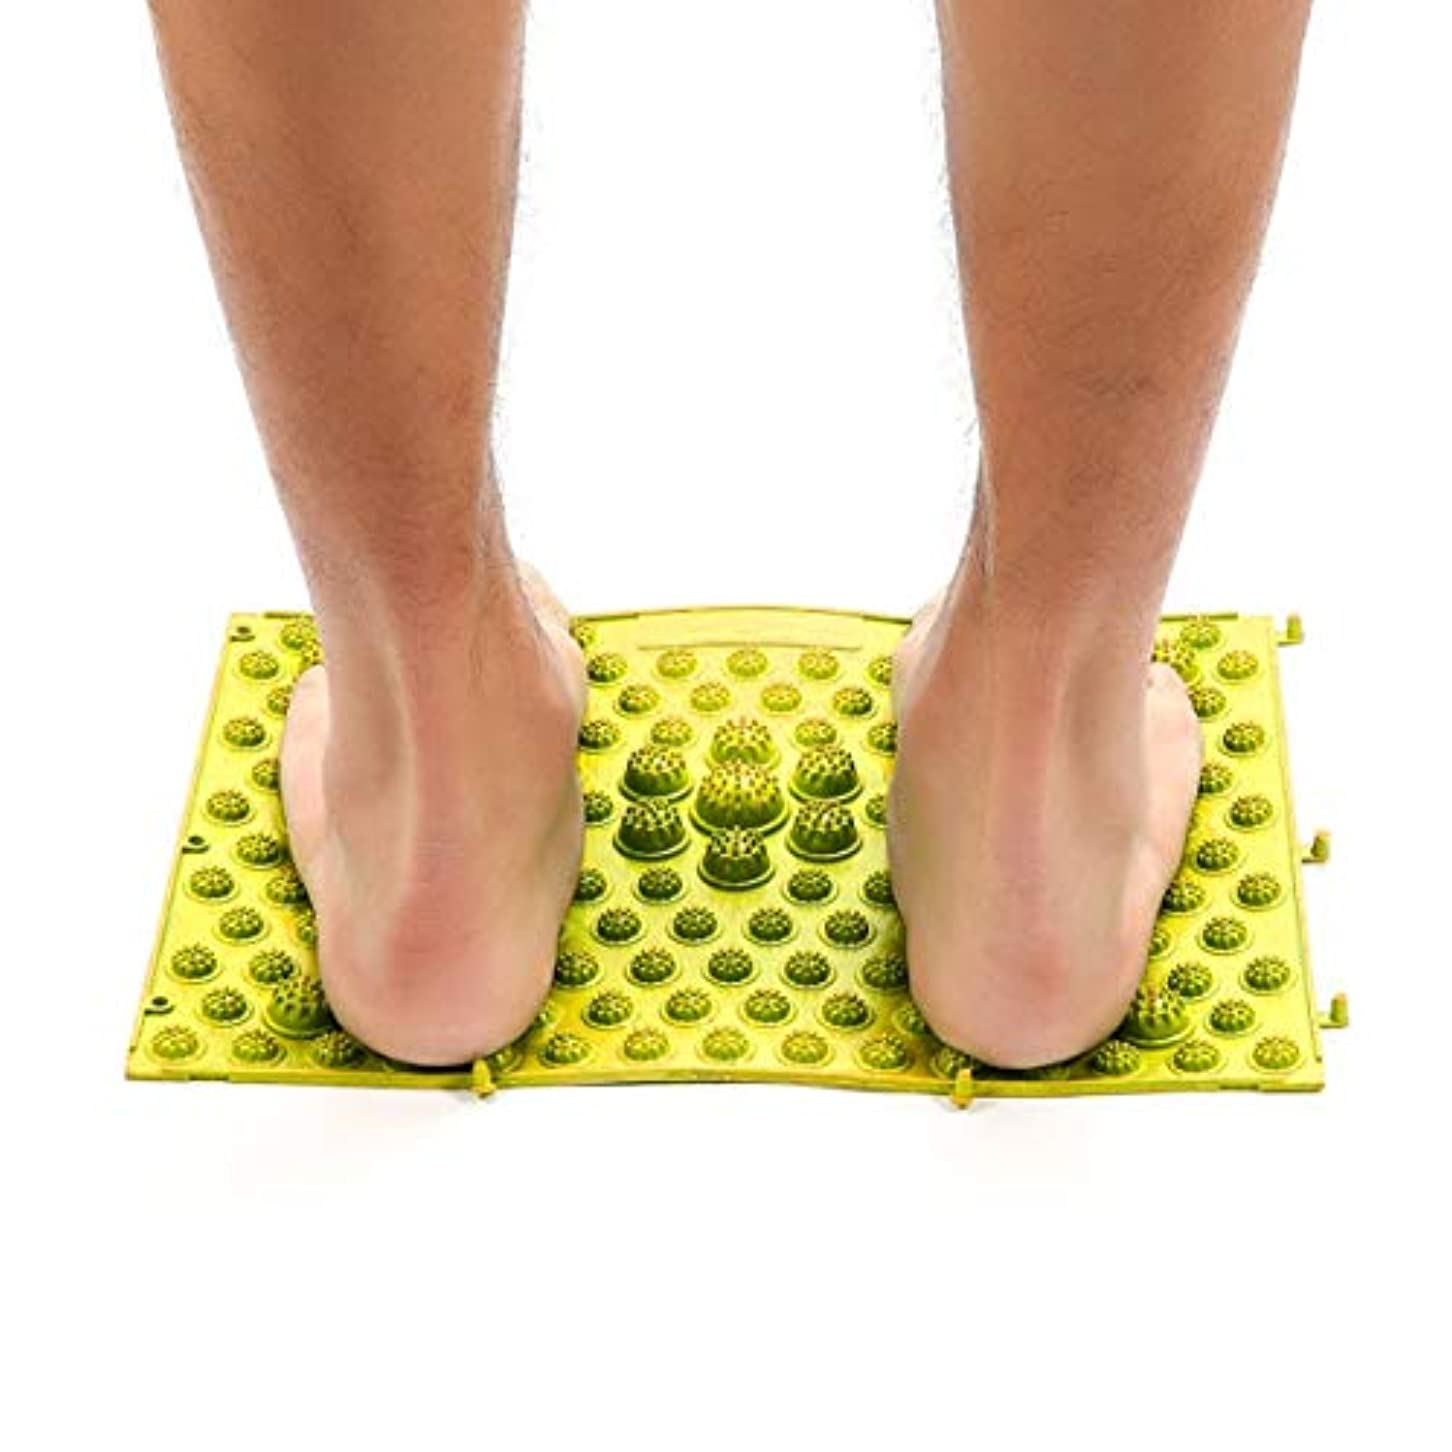 突進チョコレート原子炉Acupressure Foot Mats Running Man Game Same Type Foot Reflexology Walking Massage Mat for Pain Relief Stress Relief...